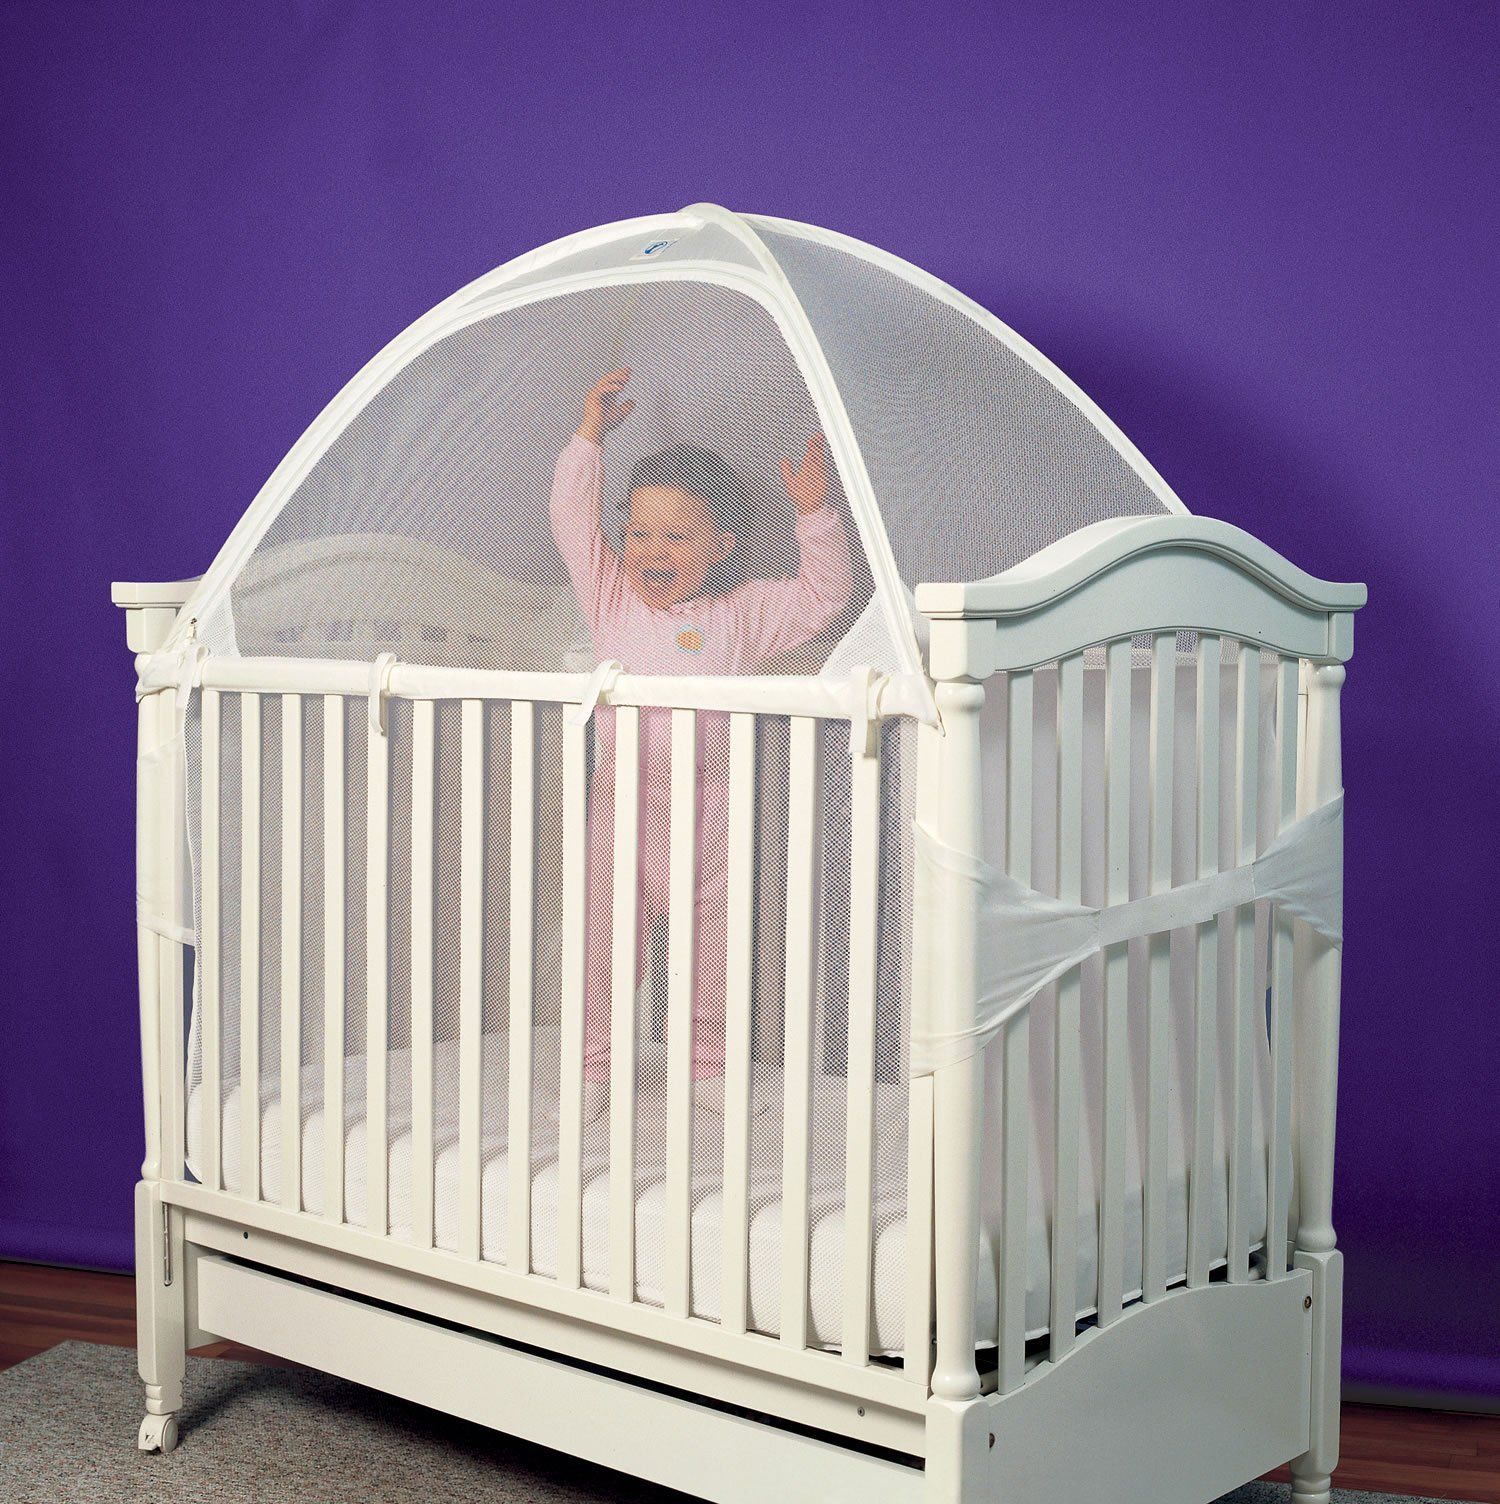 tots in mind crib tent - Google Search & tots in mind crib tent - Google Search | Maggie and Rosieu0027s Room ...